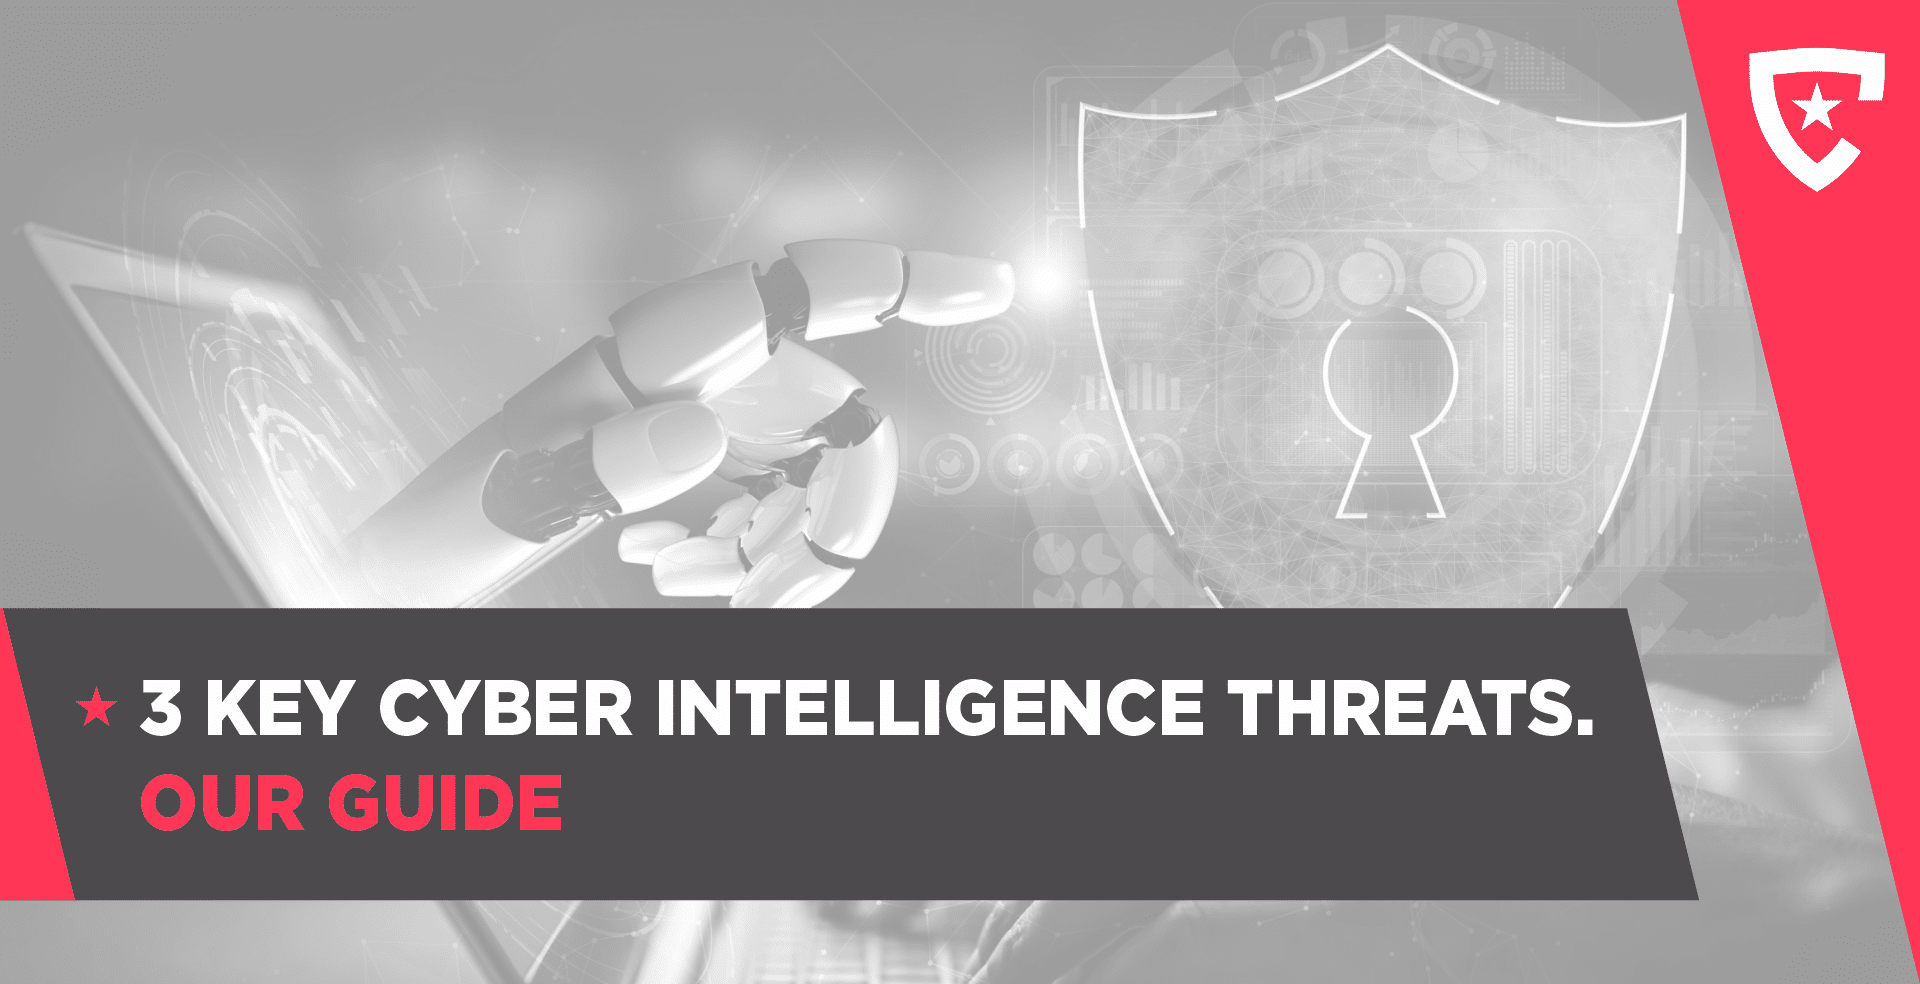 3 Key Cyber Intelligence Threats. Our Guide